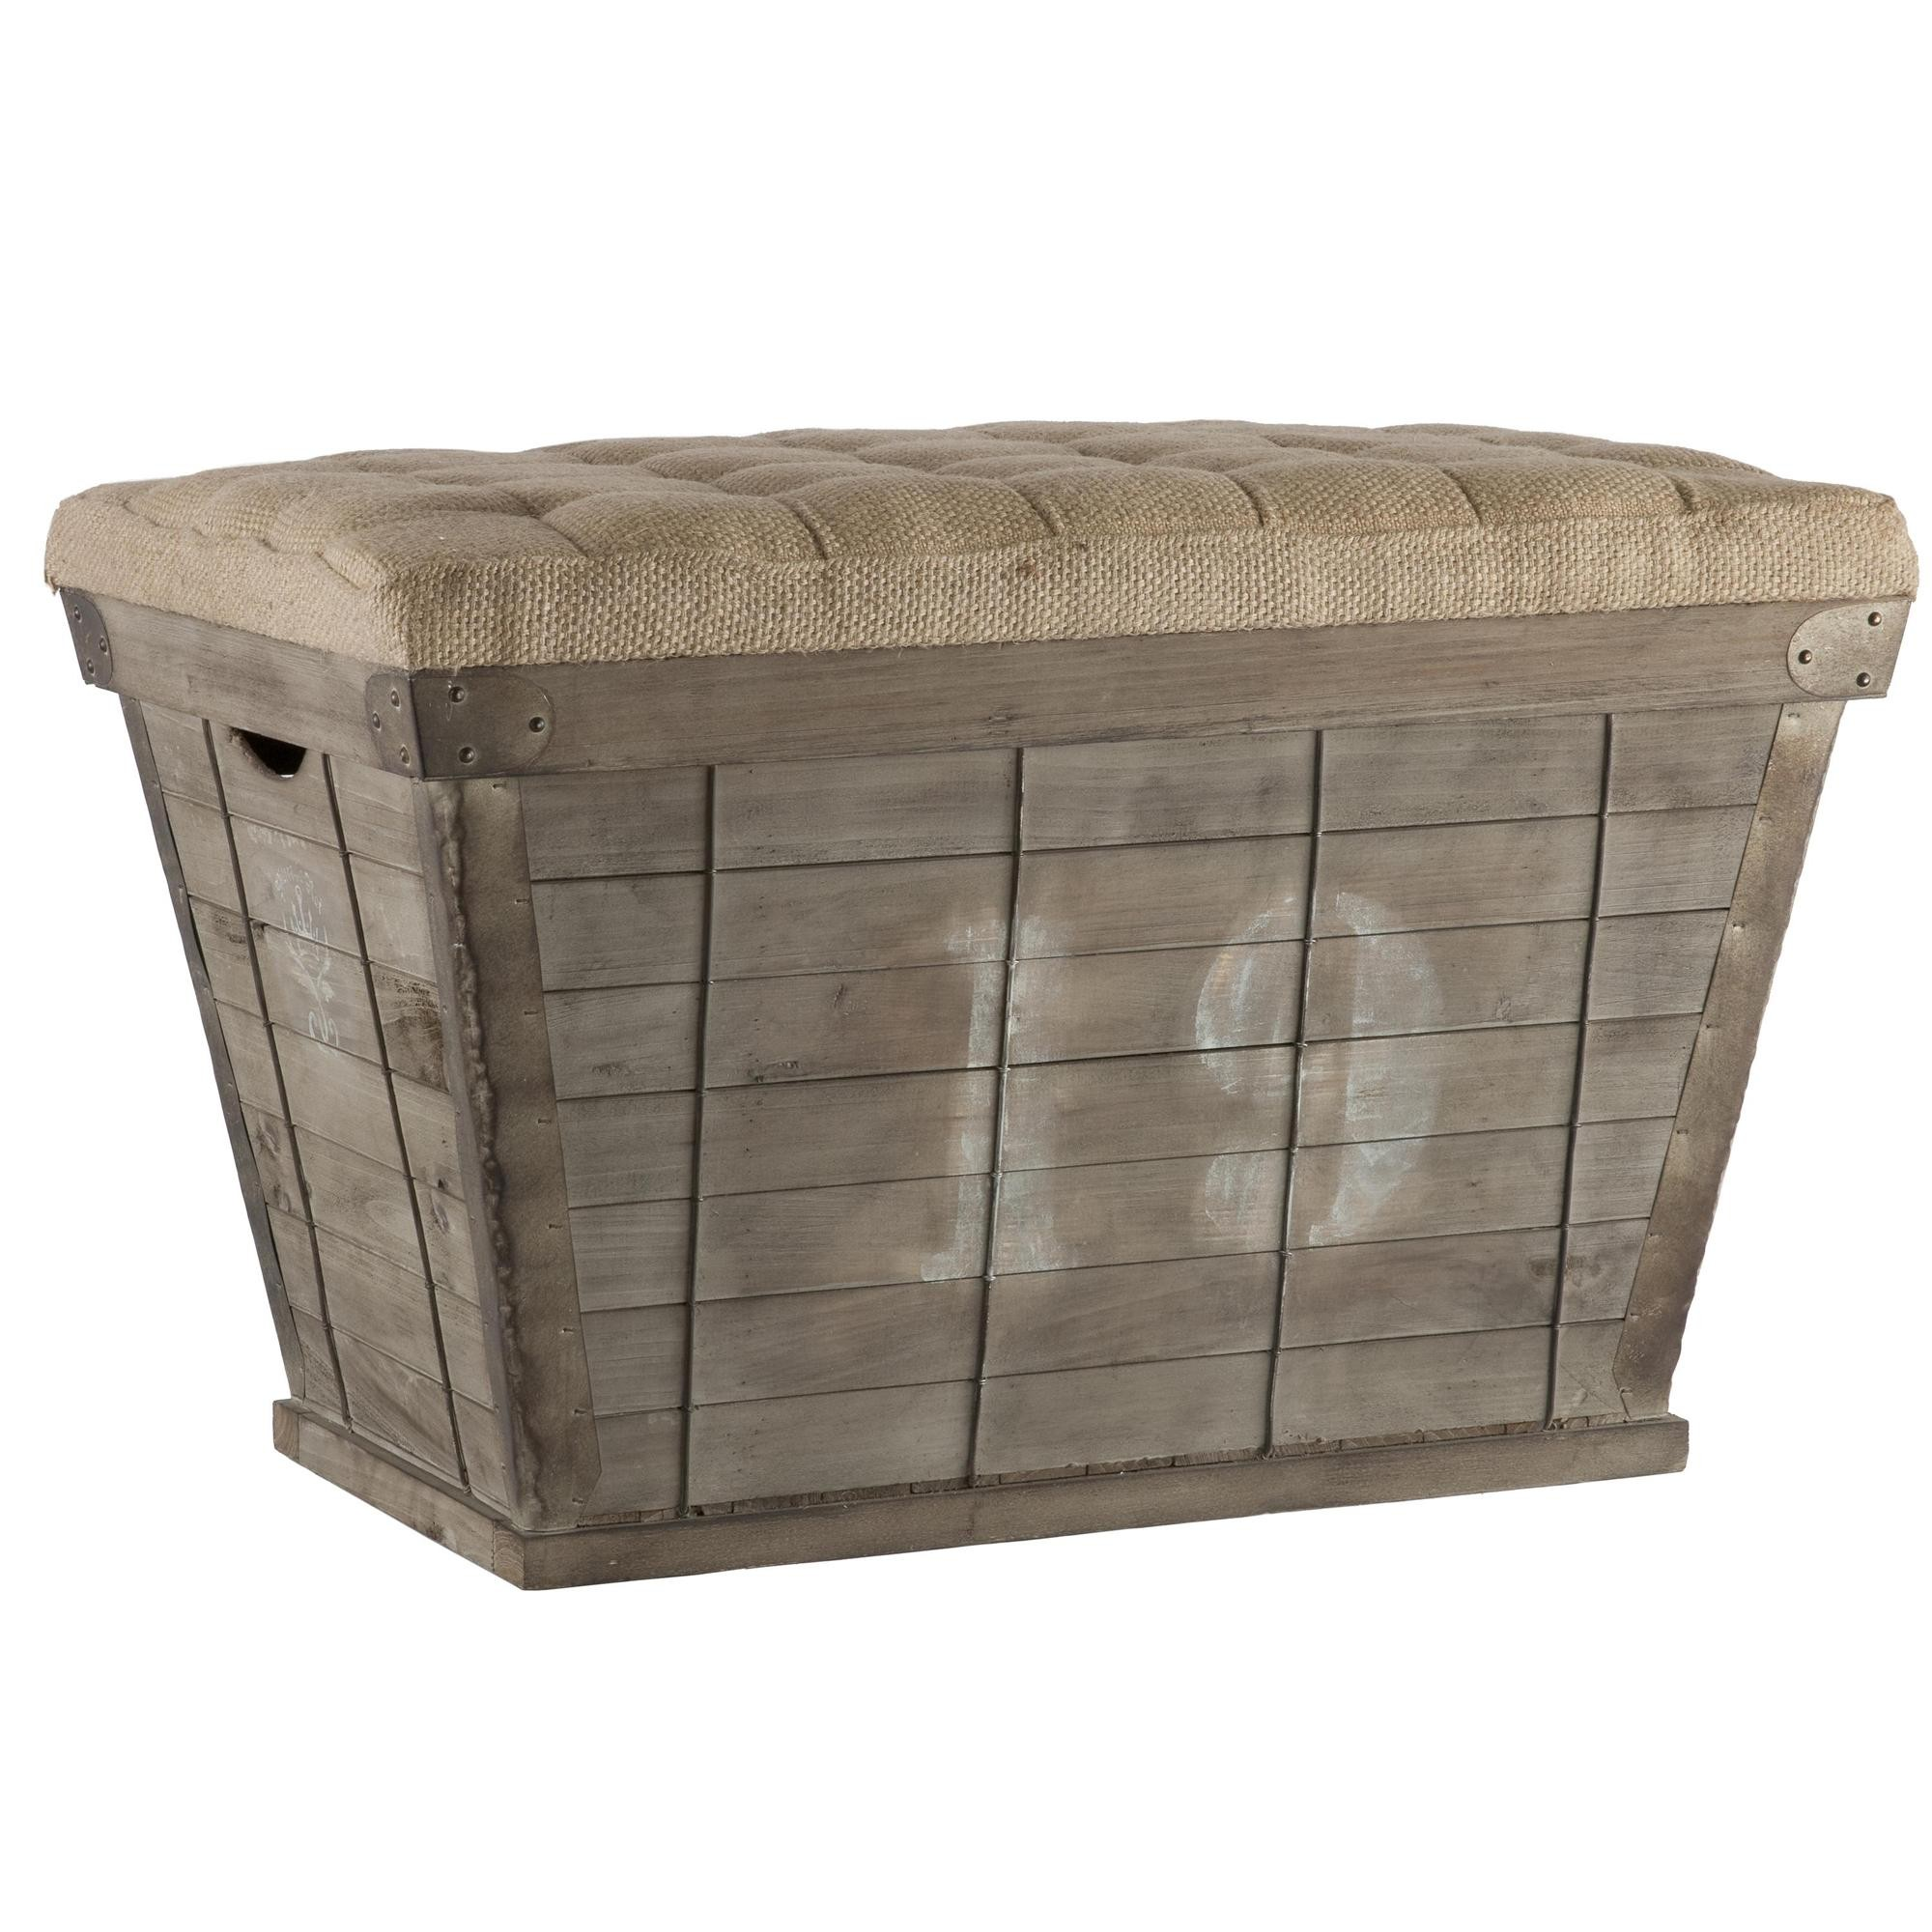 Aidan gray storage crate bench tuvalu home tuvalu coastal home aidan gray storage crate bench geotapseo Images